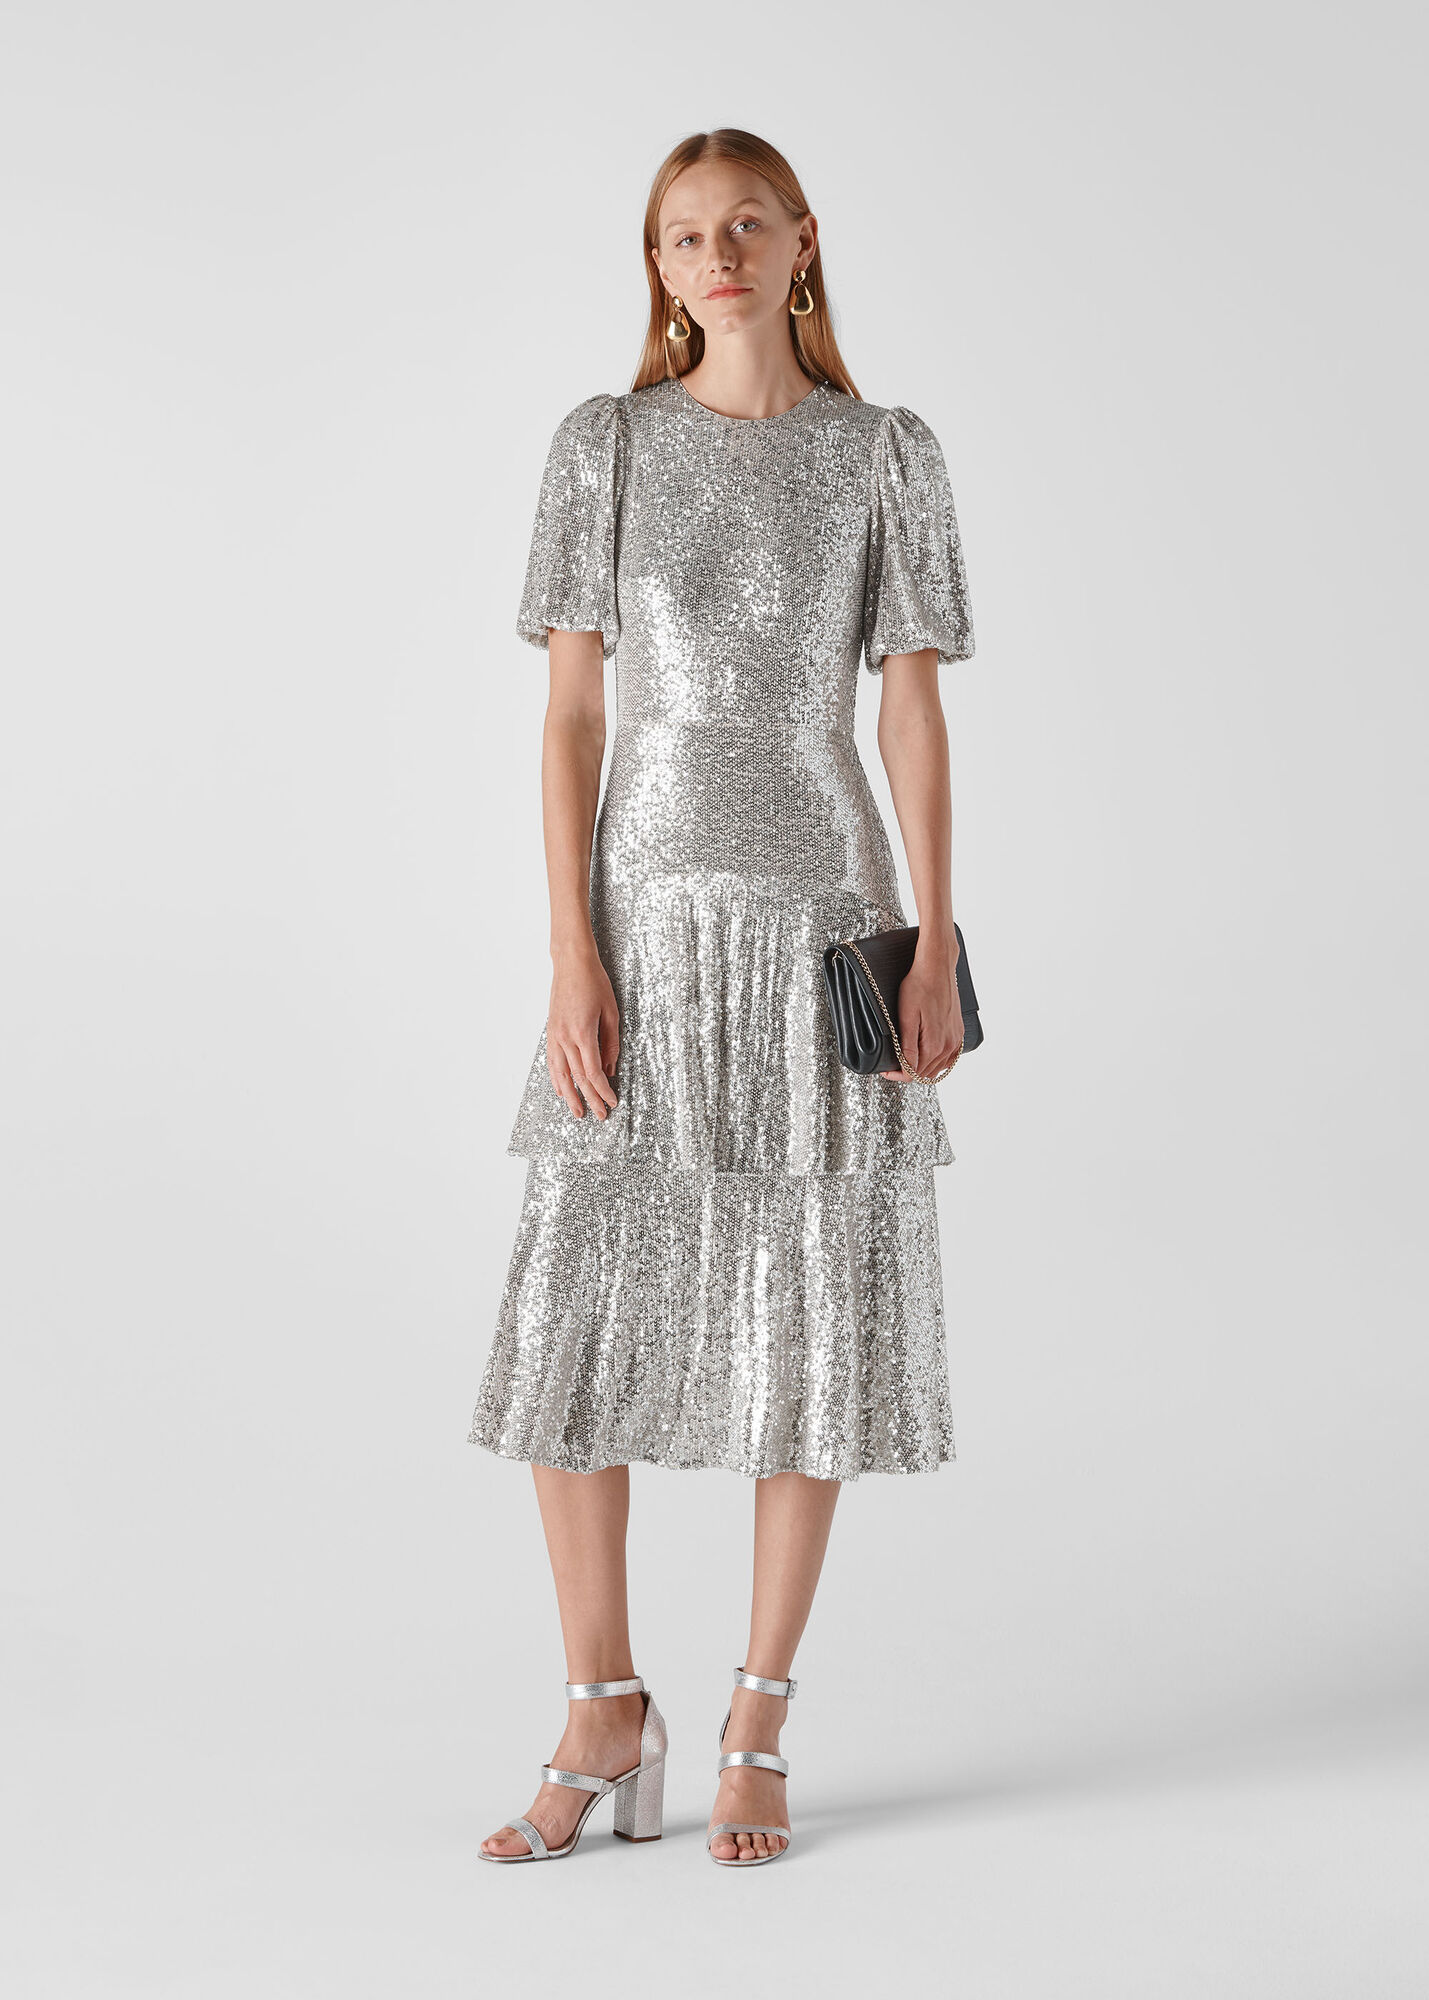 Arabelle Sequin Midi Dress